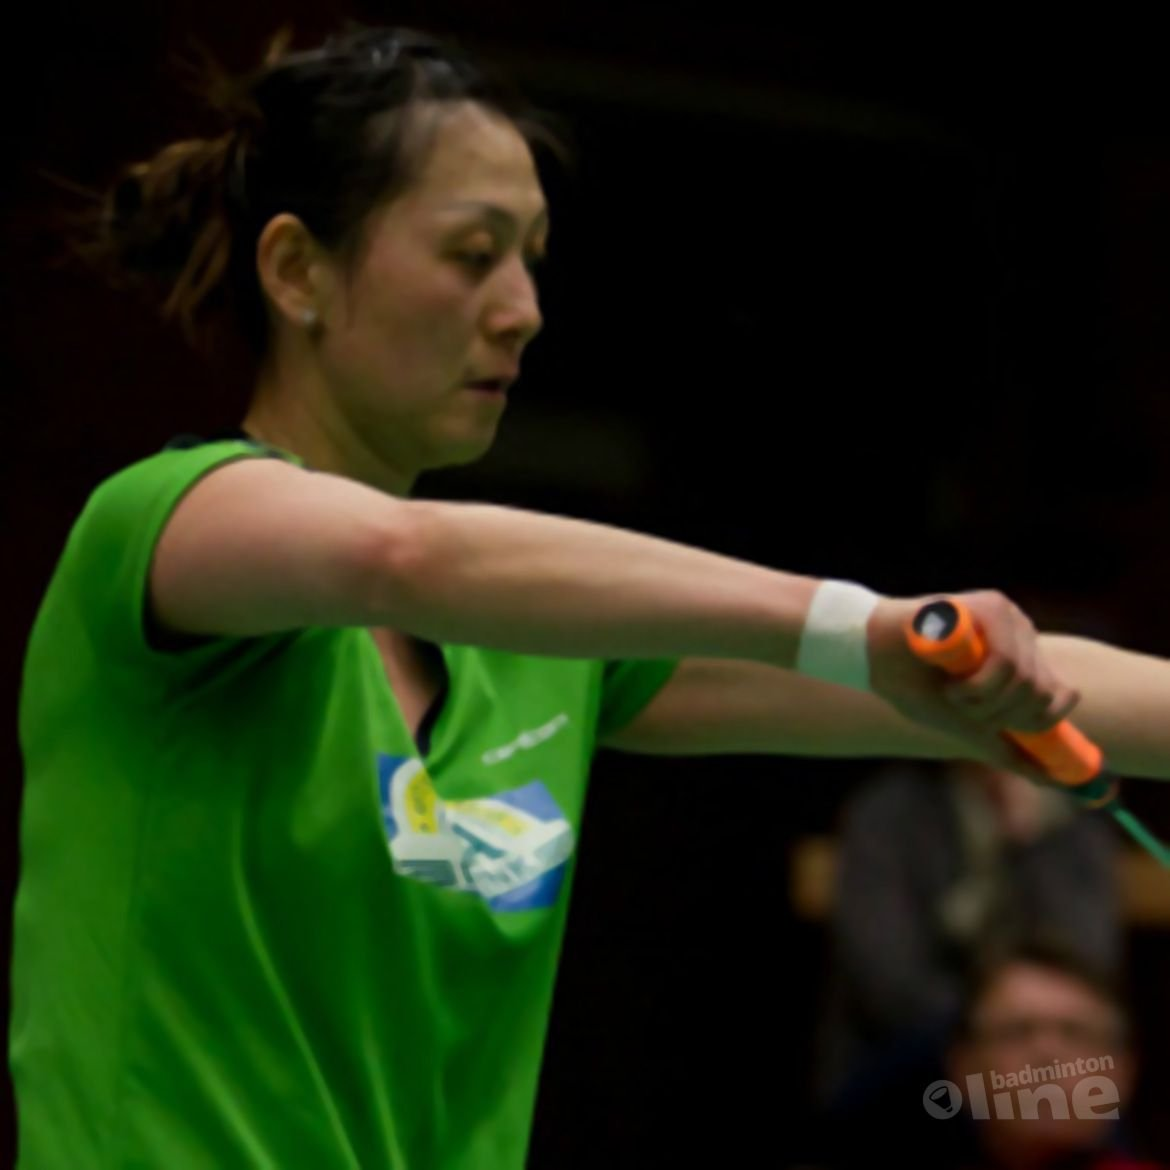 Yao Jie wint eerste ronde in Yonex Sunrise India Open 2012